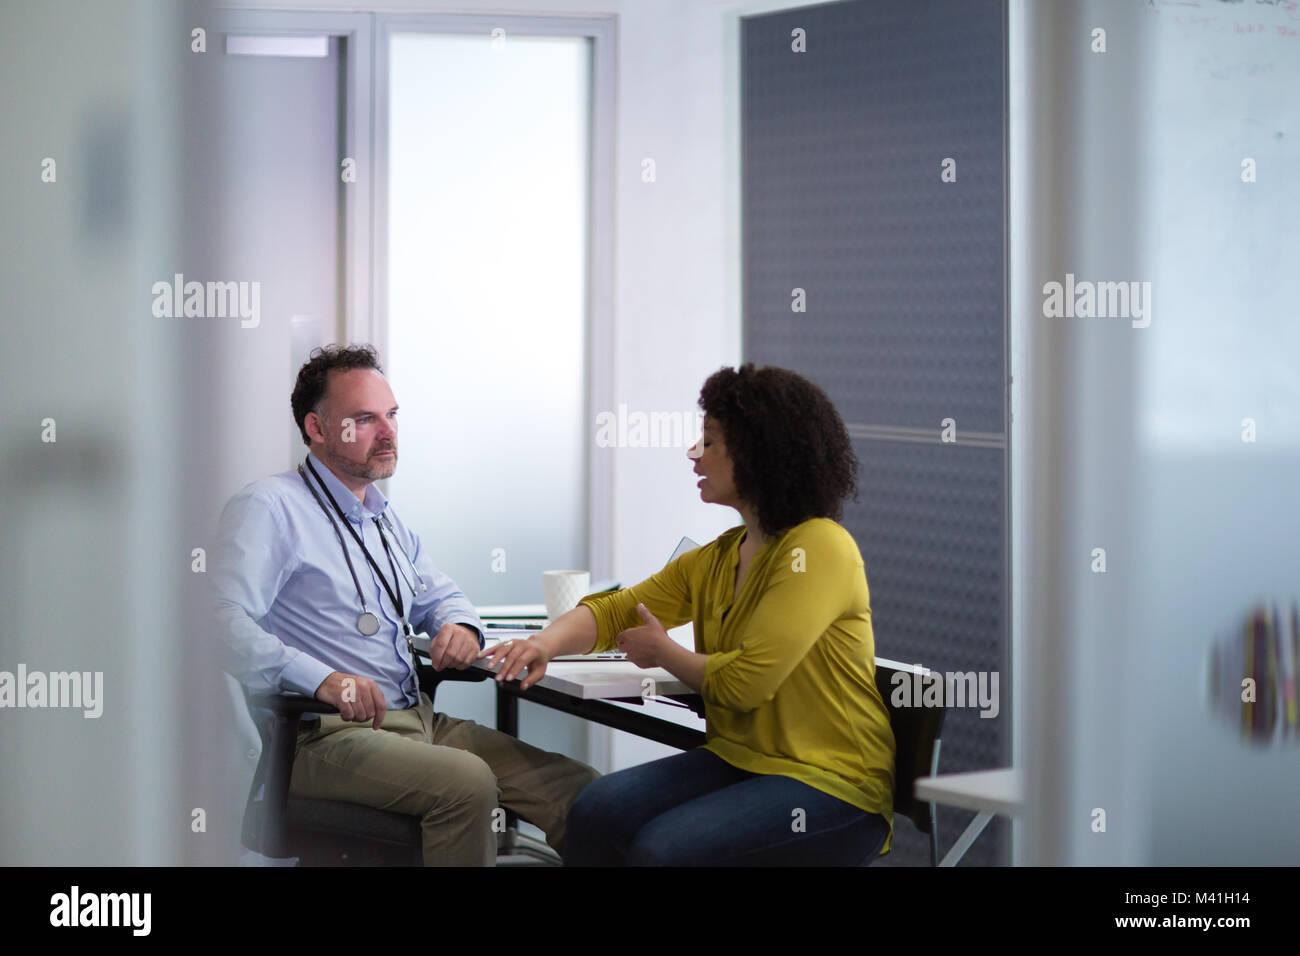 Male Medical Doctor listening to patient symptoms - Stock Image